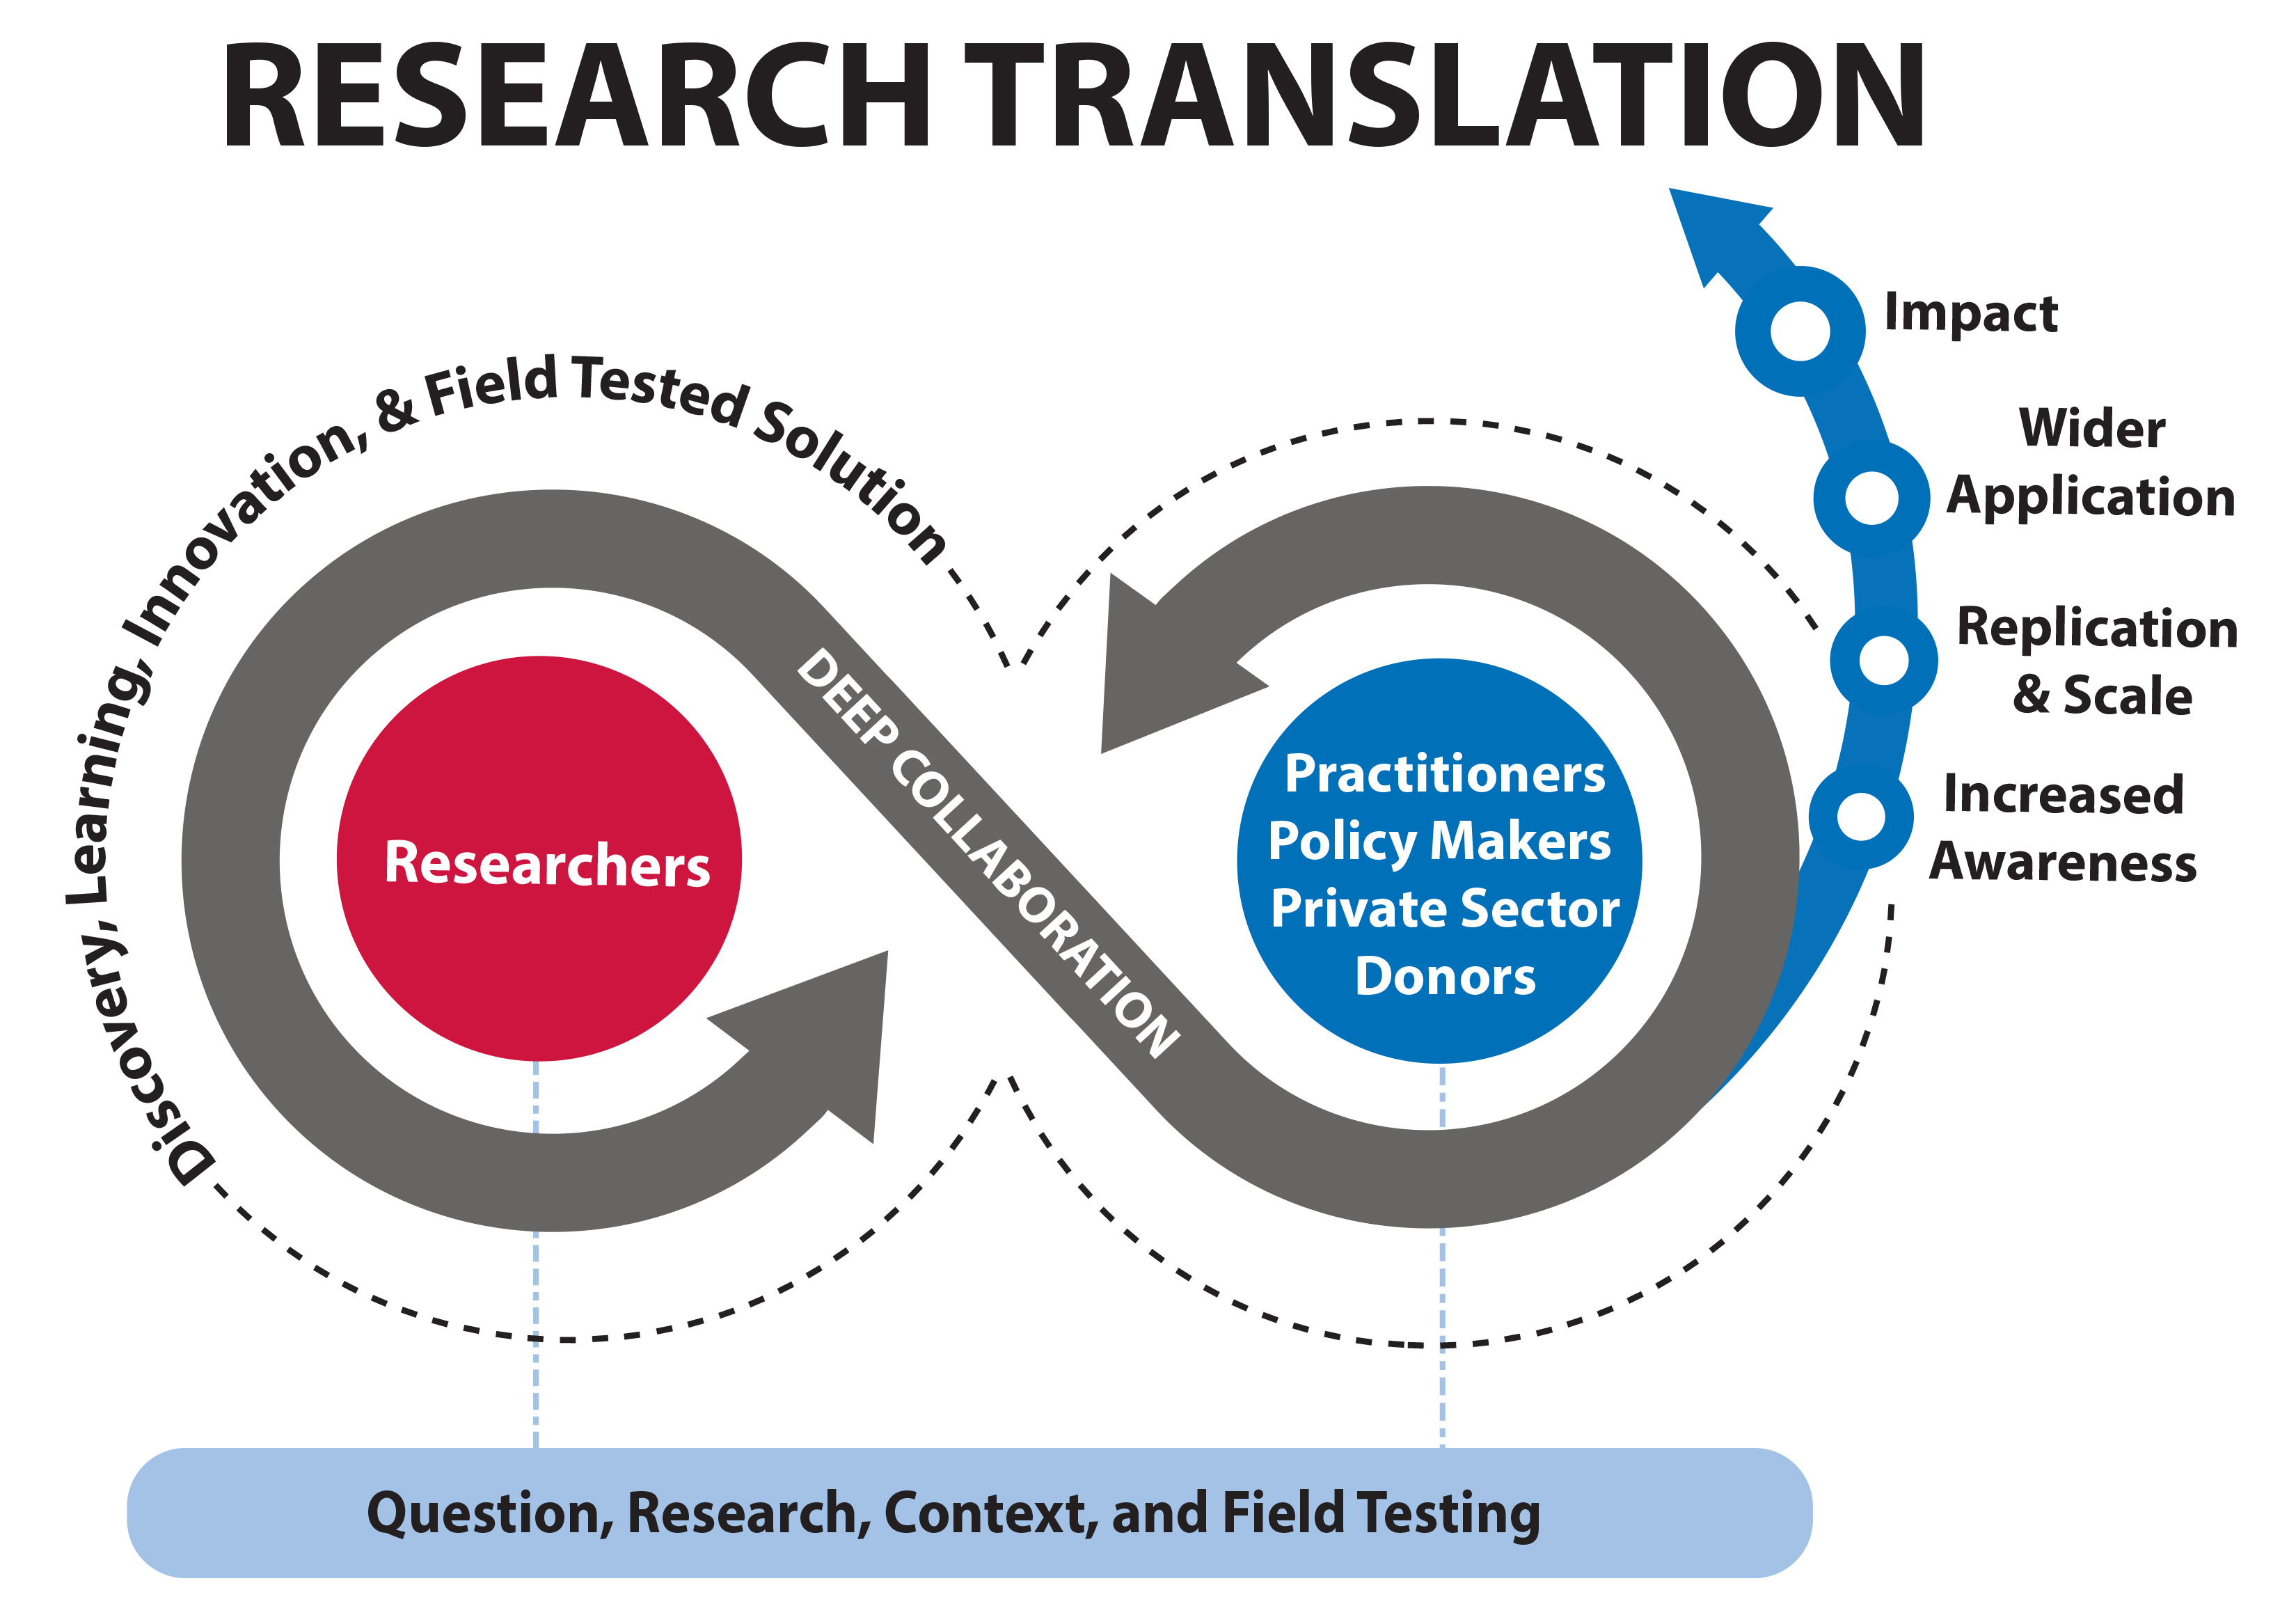 Research Translation graphic